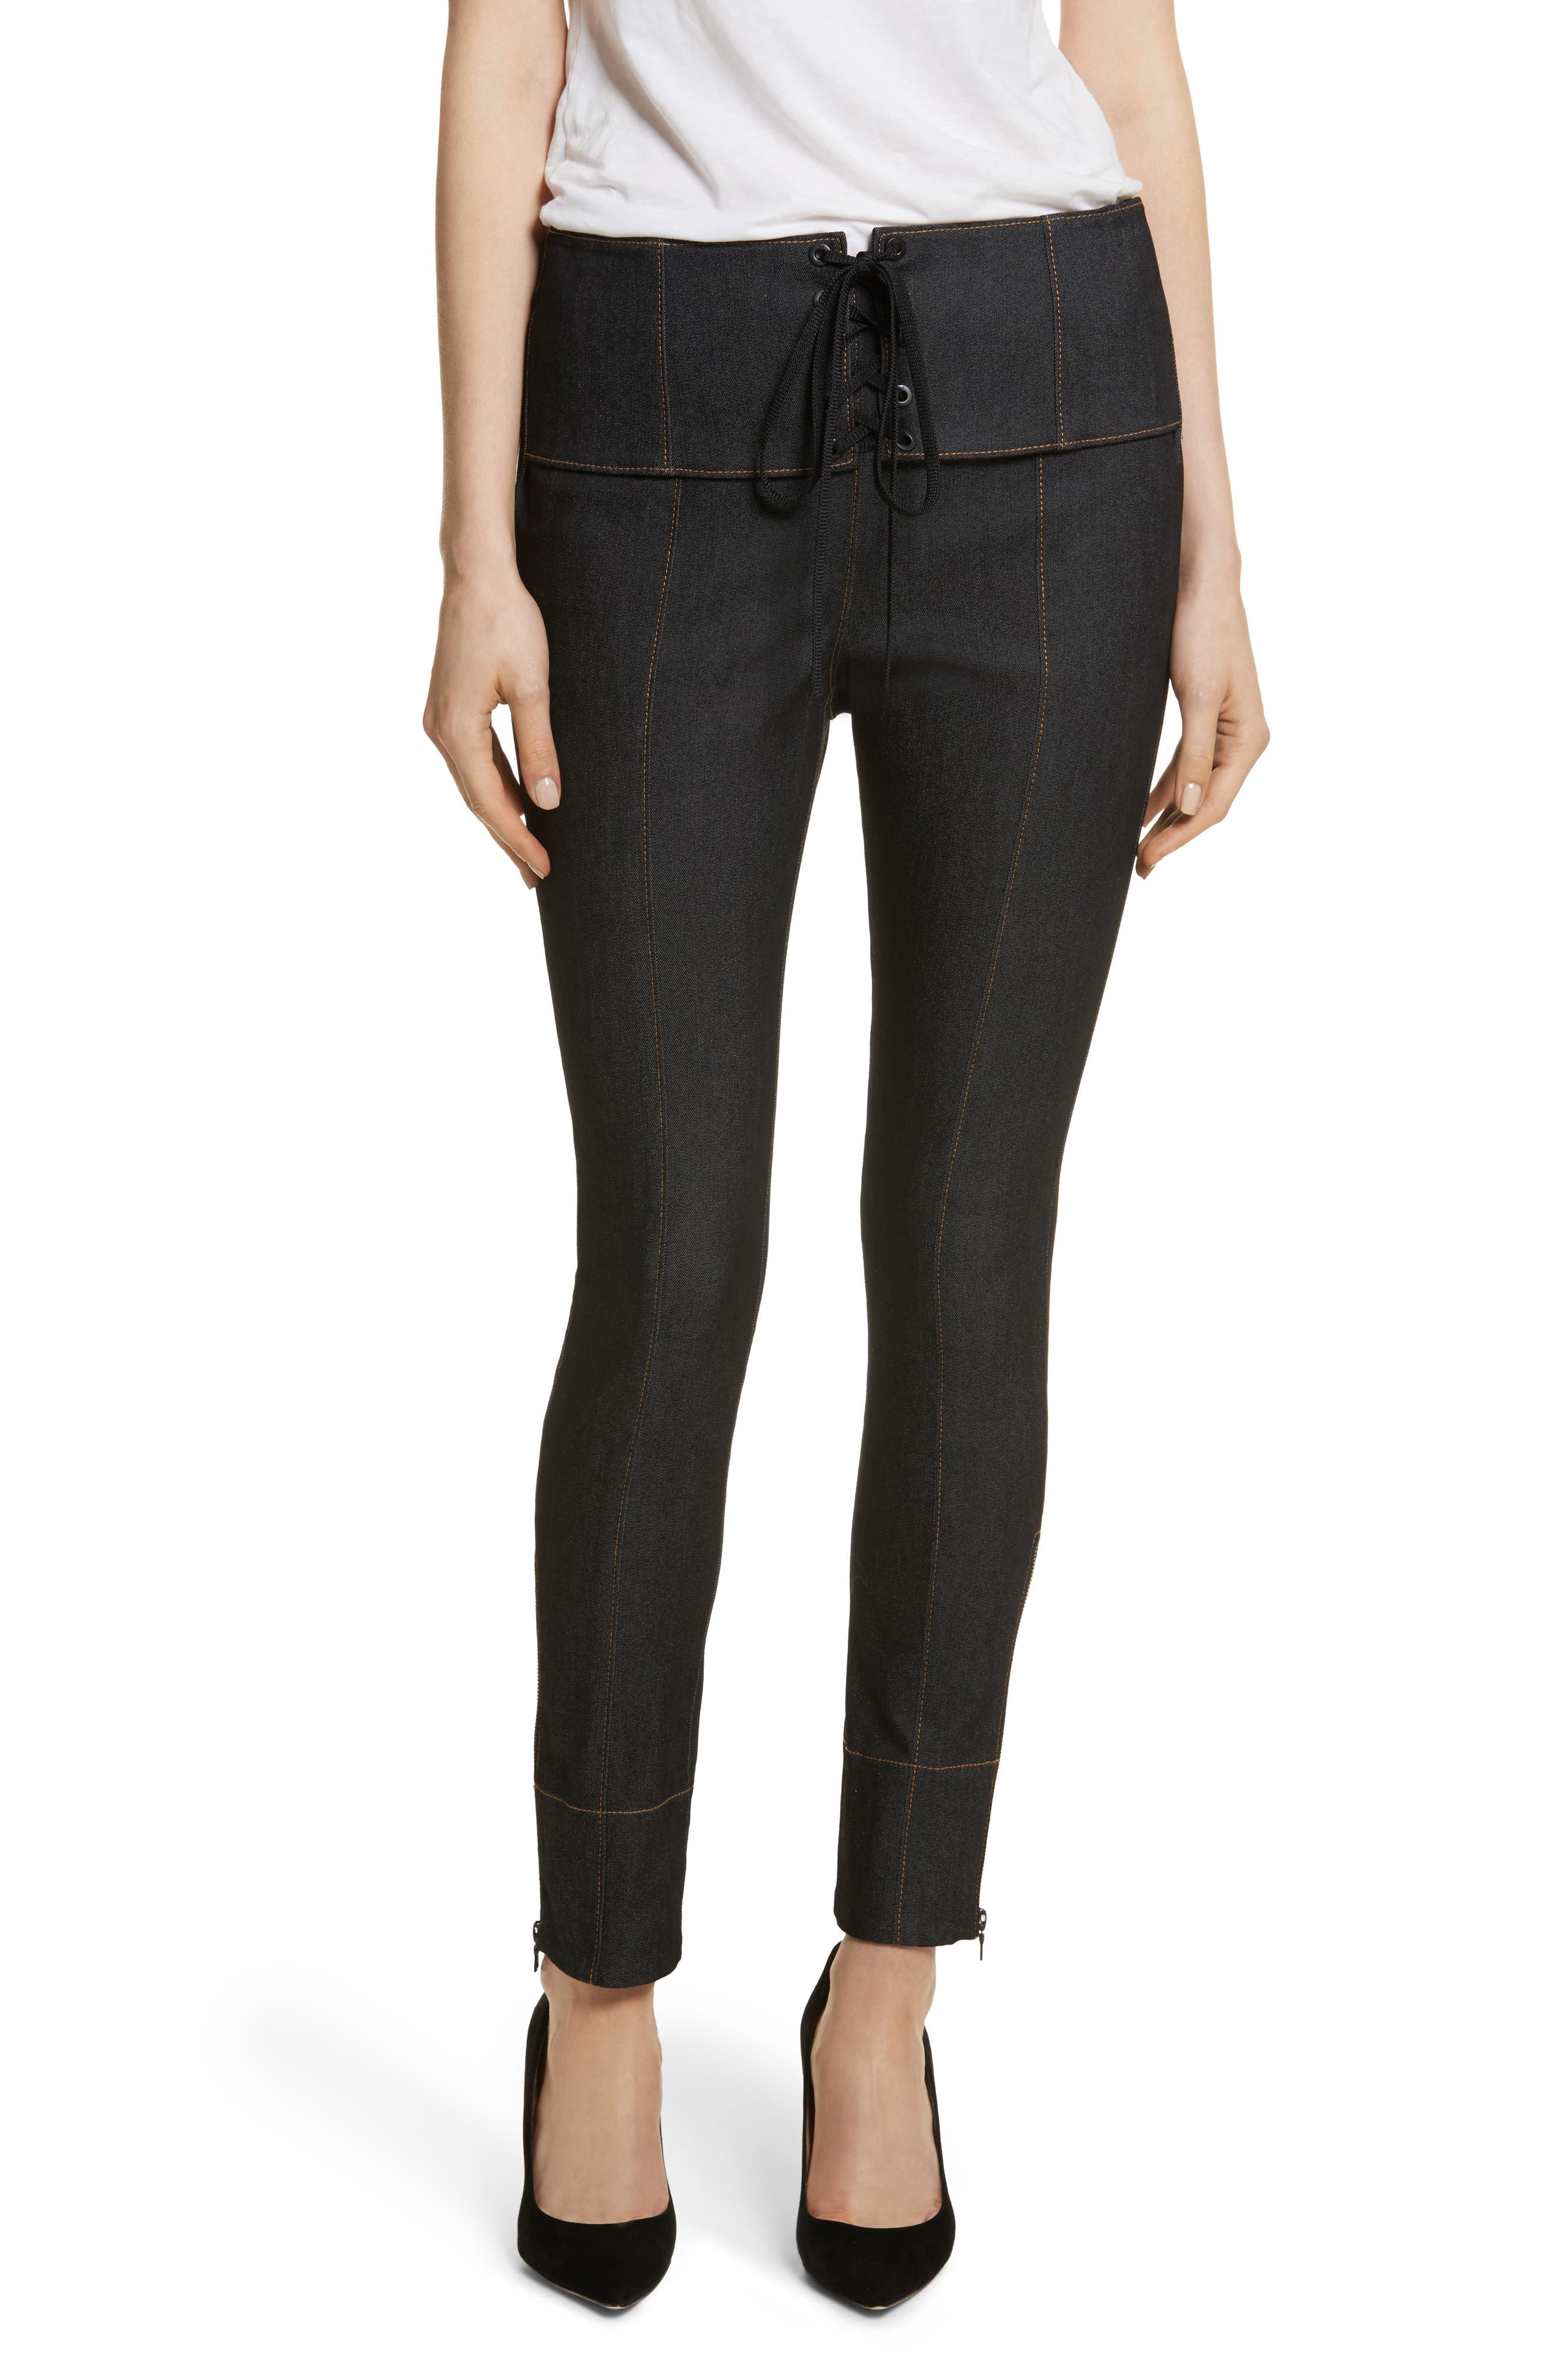 Alternate Image 1 Selected - Cinq à Sept Andie Lace Front Skinny Ankle Jeans